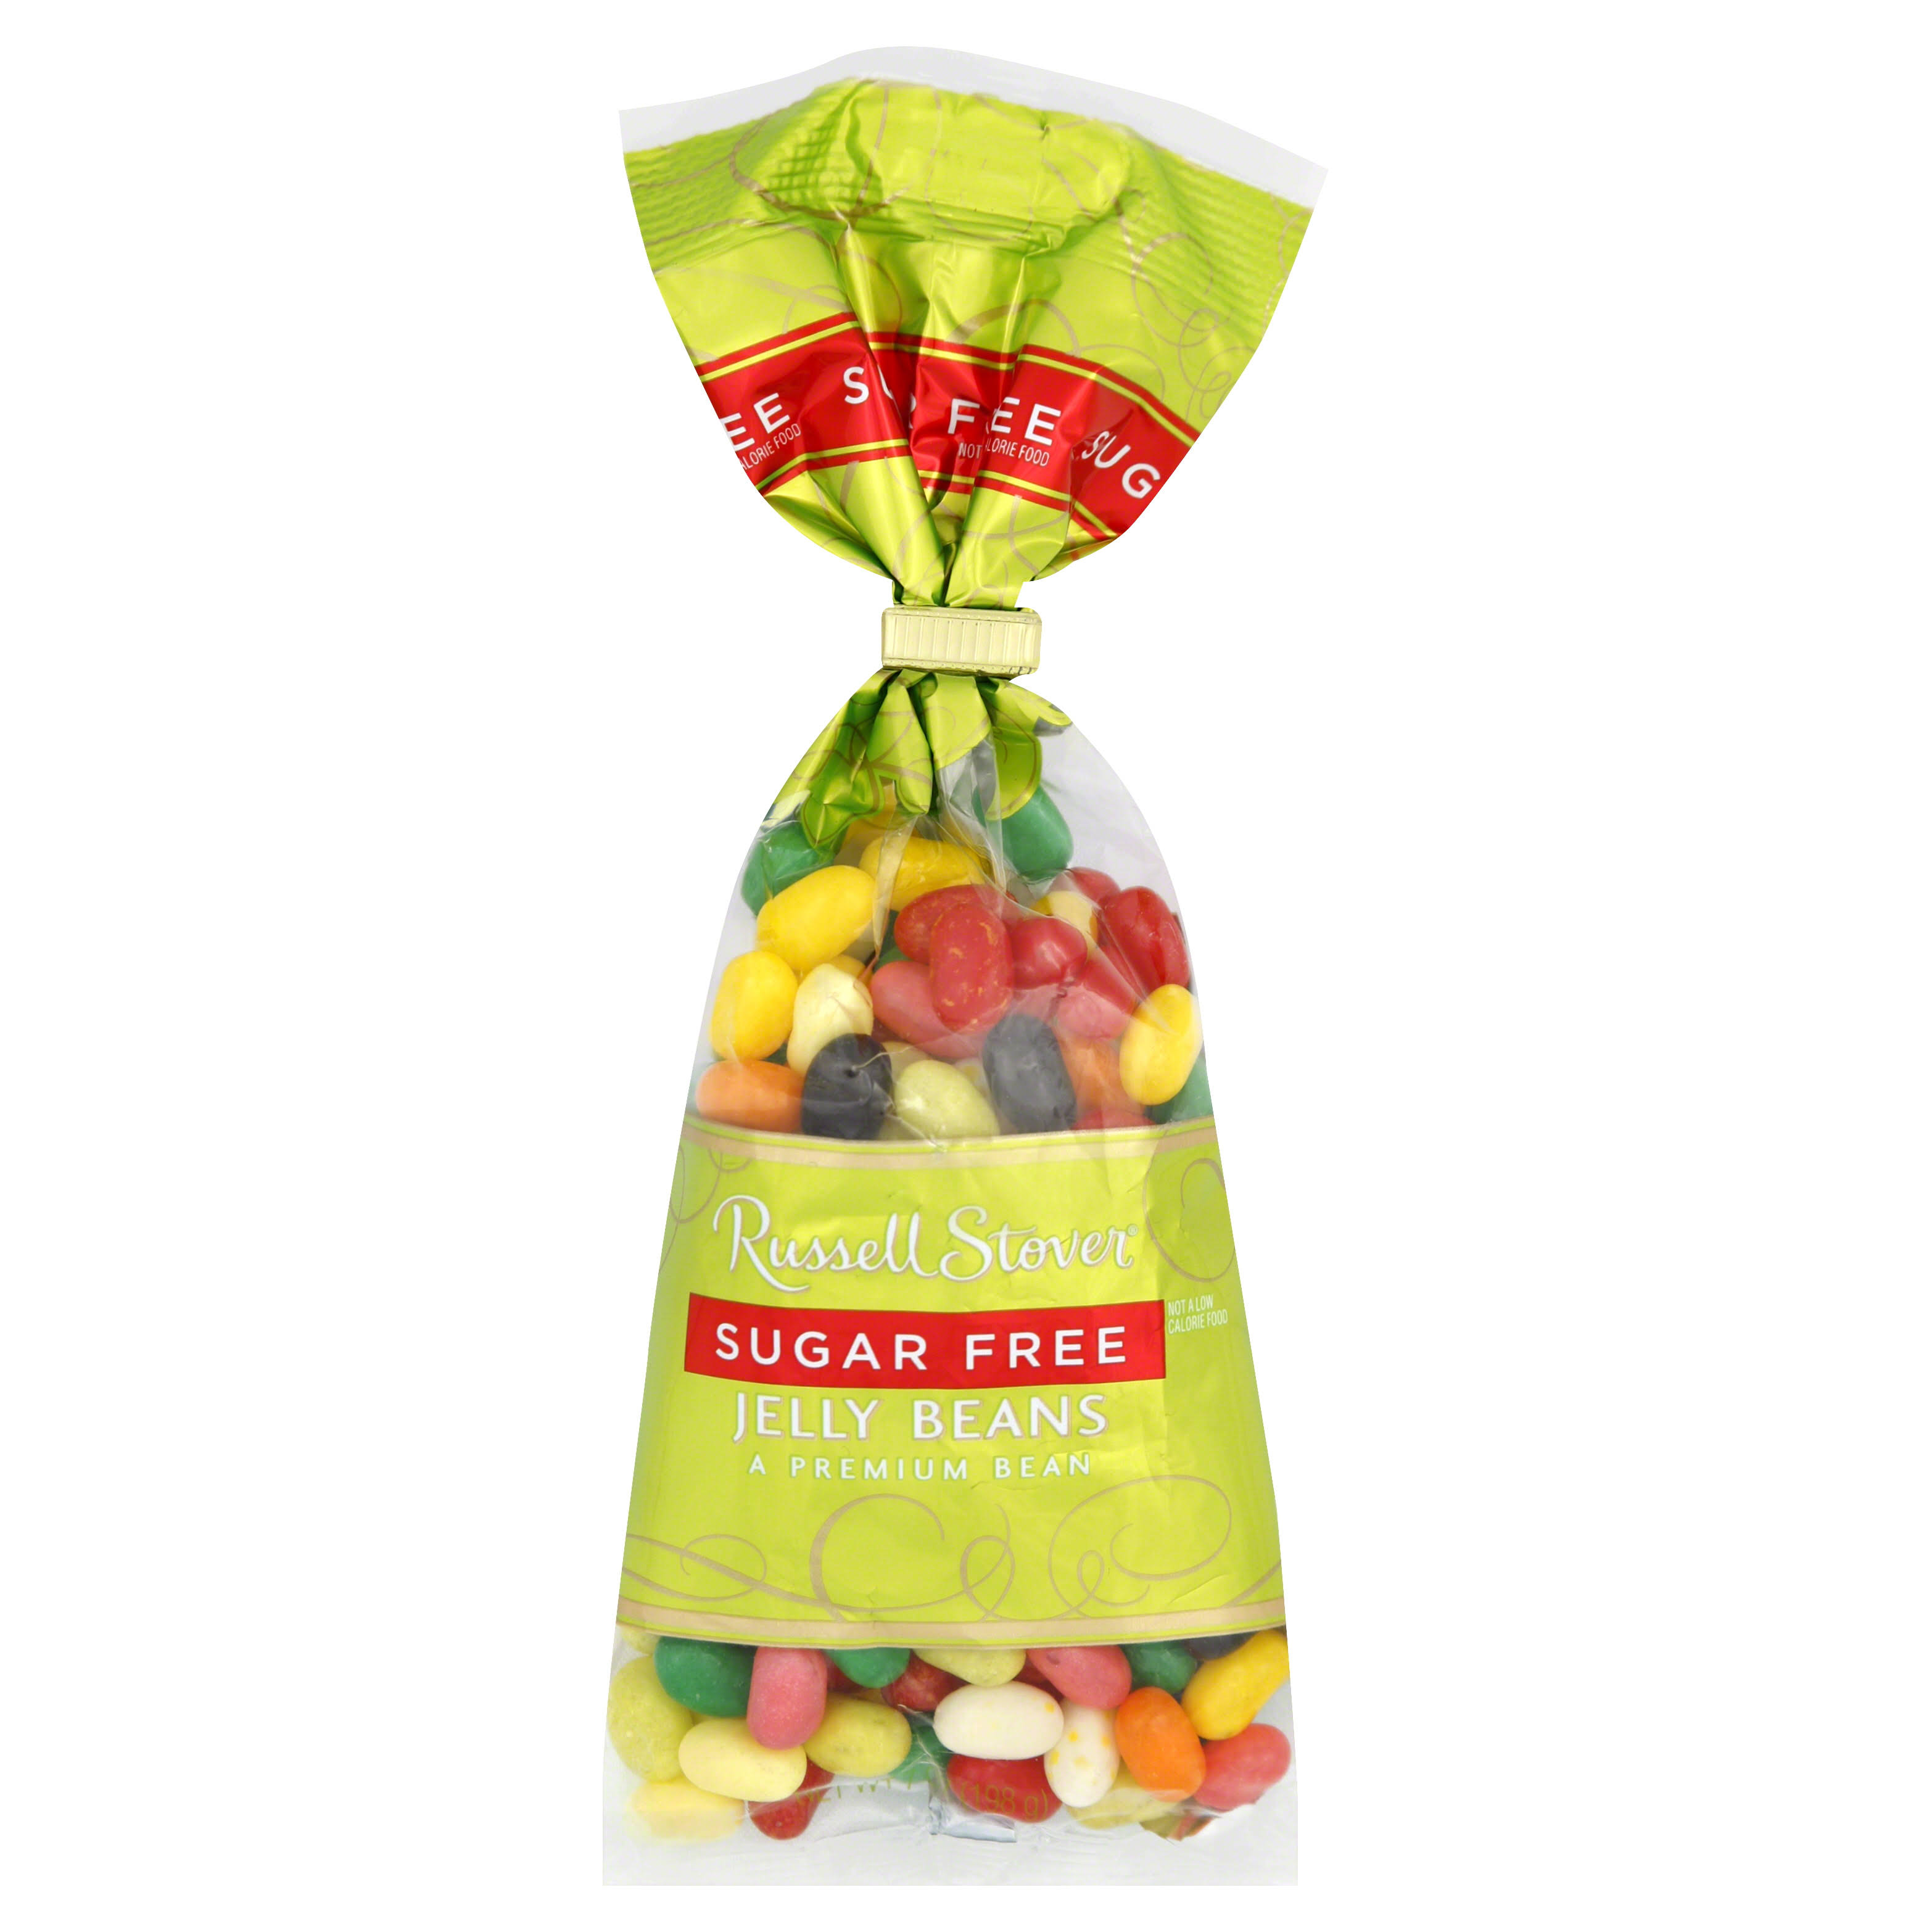 Russell Stover Sugar Free Jelly Beans - 7oz